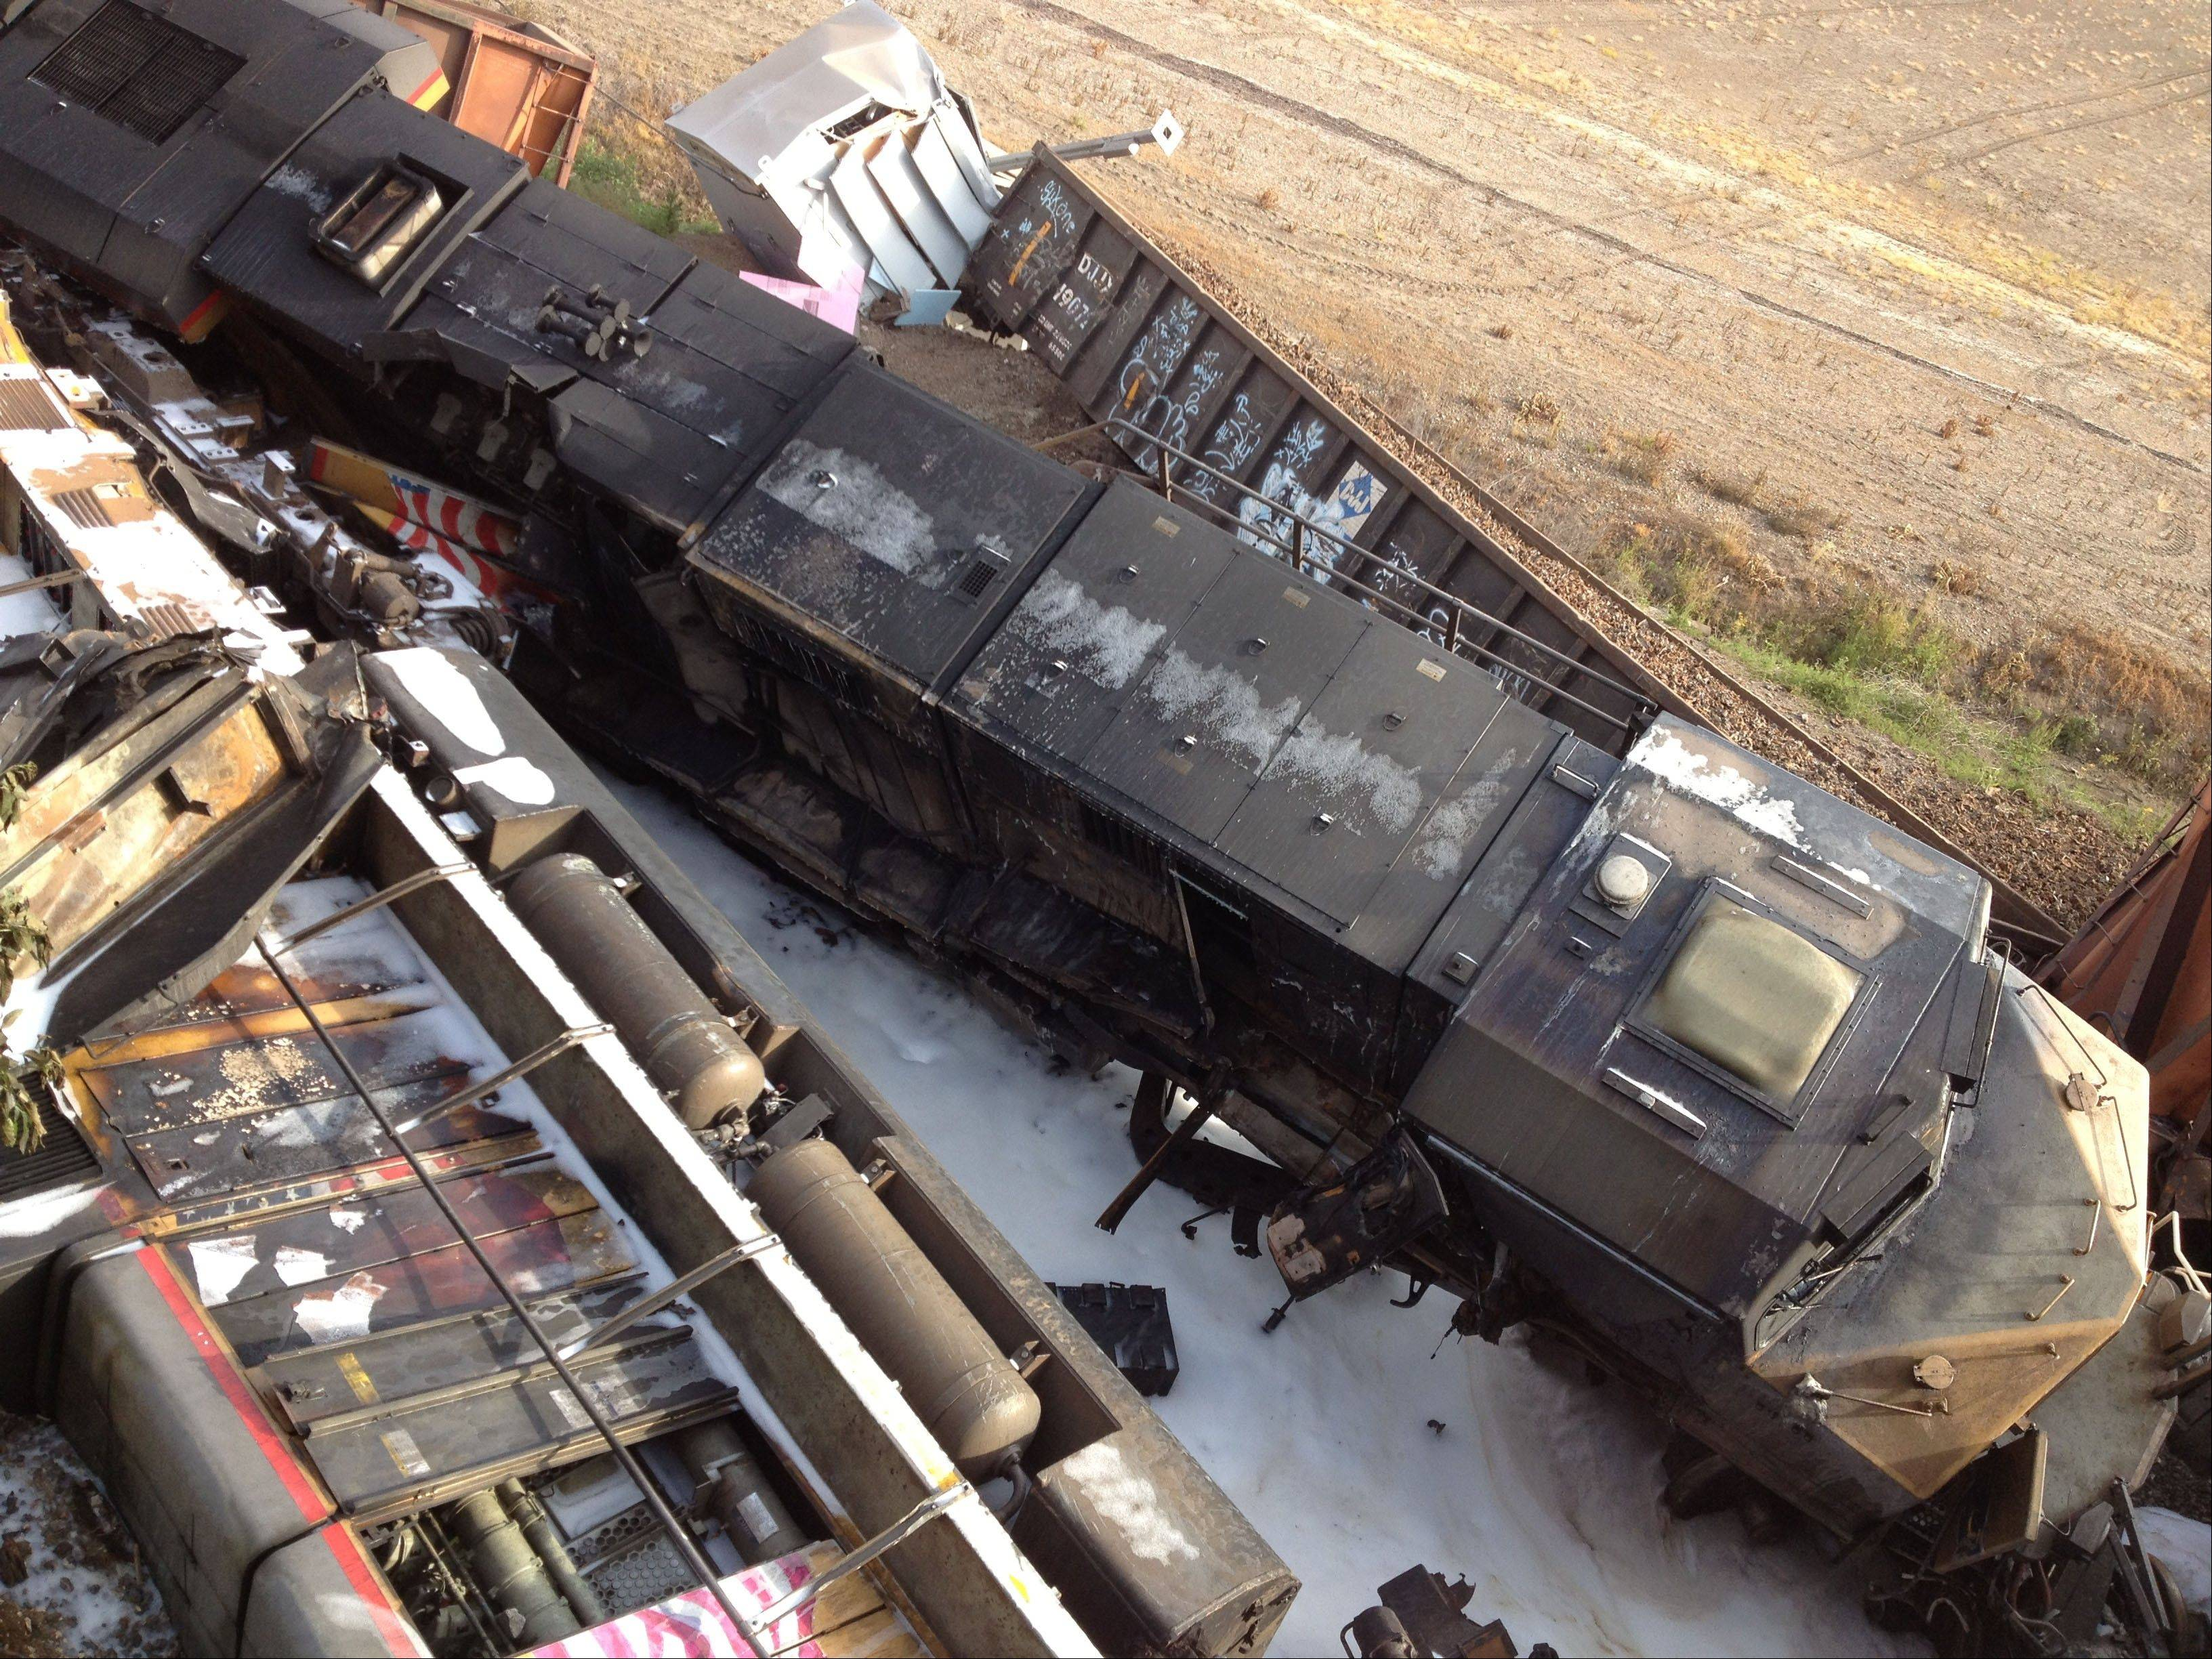 Damaged railcars lie on the ground near Rockview, Mo. on Saturday, May 25, 2013. Authorities said a highway overpass collapsed when rail cars slammed into one of the bridge's pillars after a cargo train collision. Seven people were injured, though none seriously.